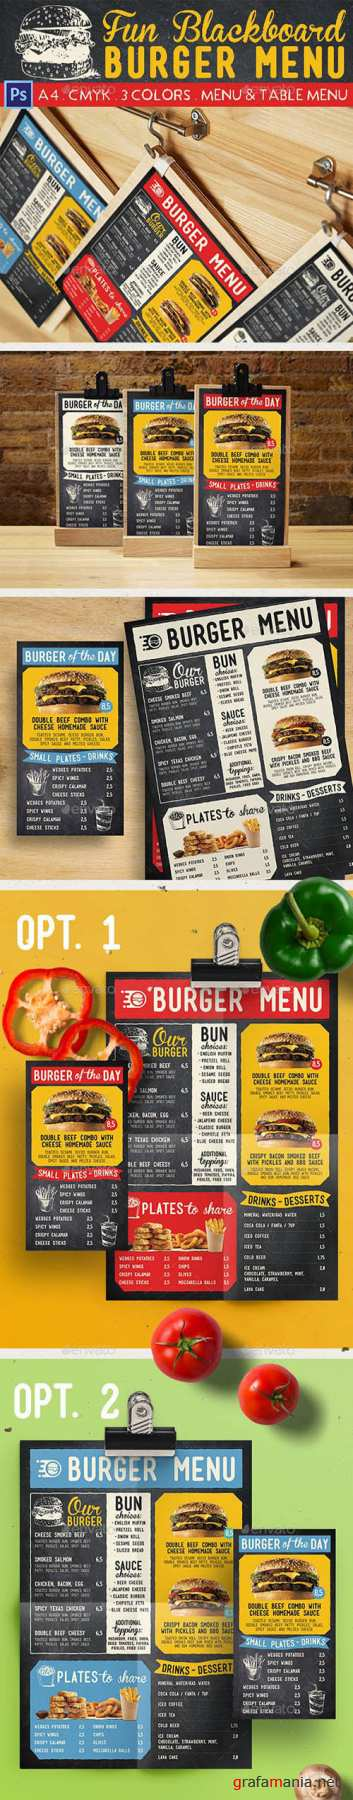 GR - Fun Blackboard Burger Menu 22066560